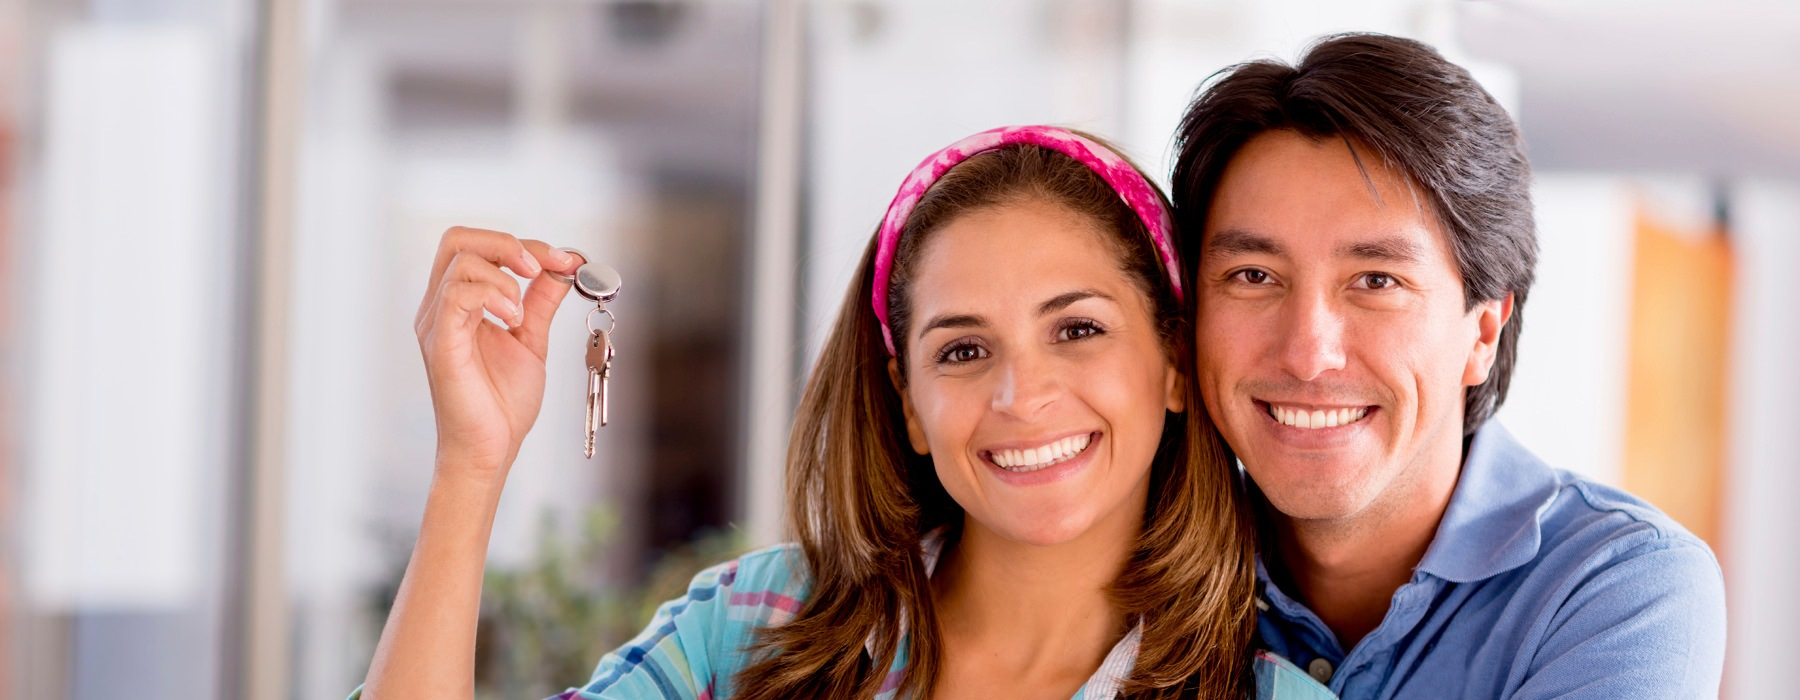 smiling couple pose for the camera with their apartment keys